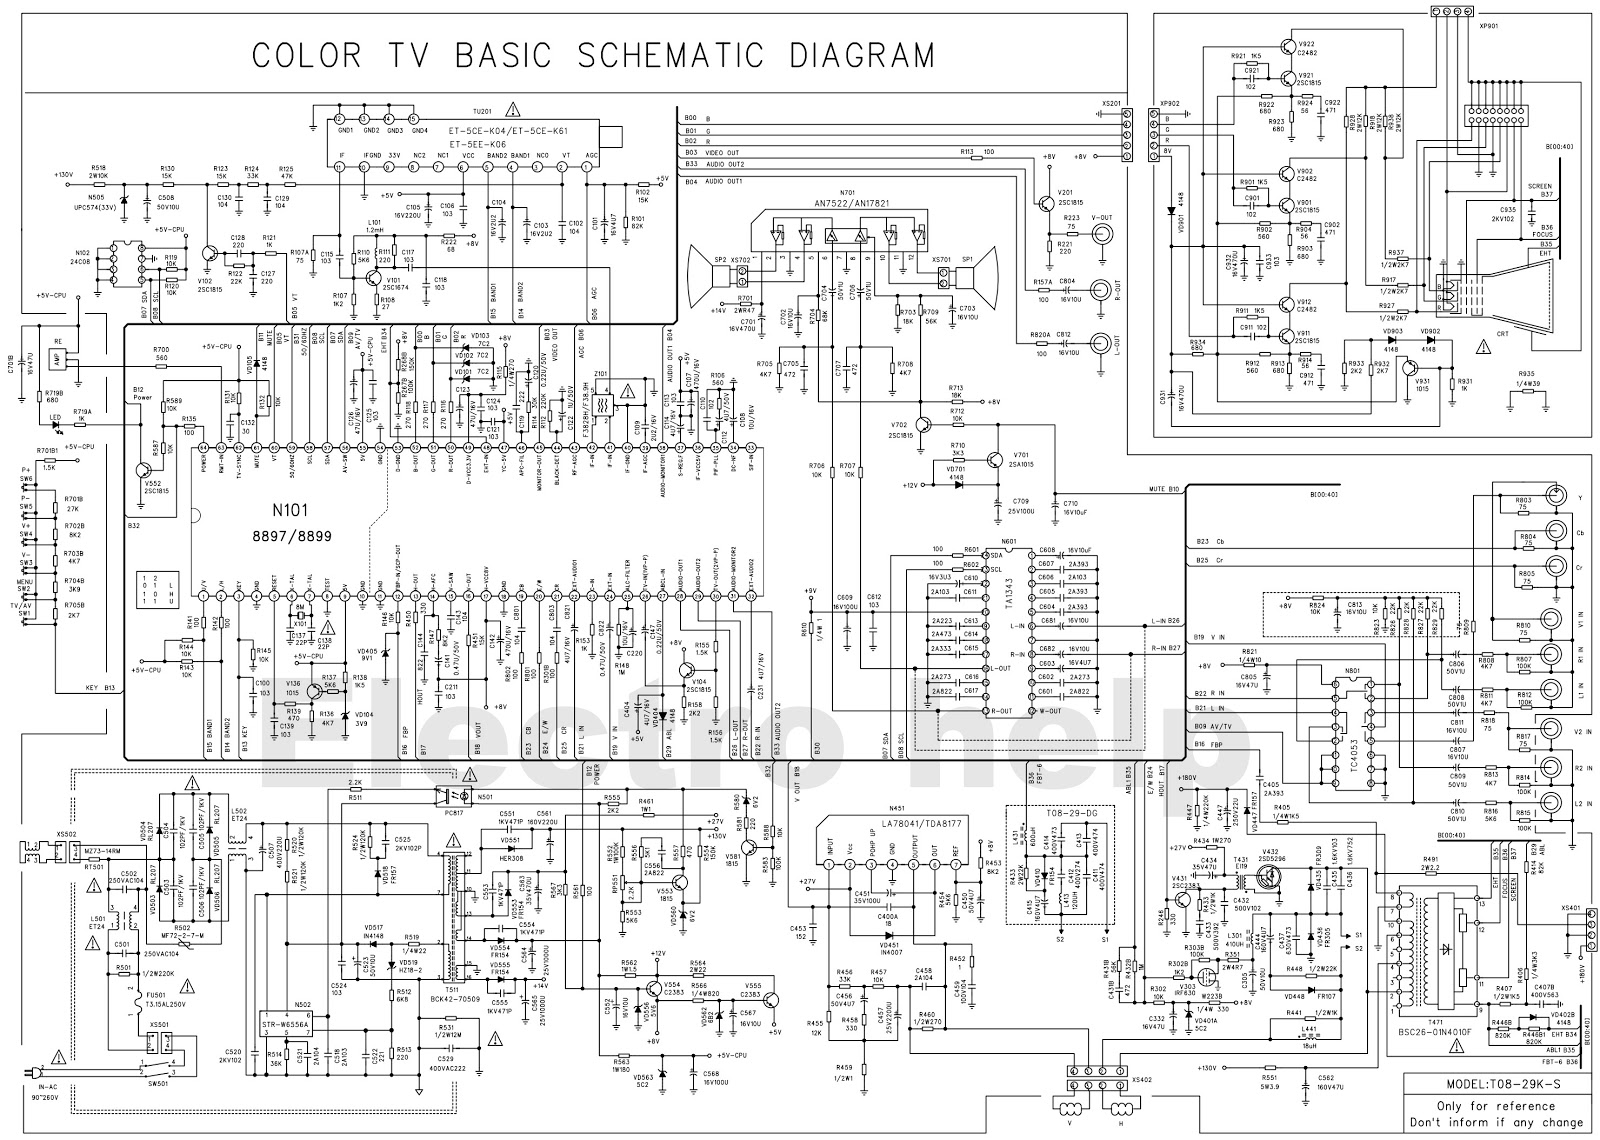 colour tv circuit diagram using tda8899 system control chroma rh schematicscom blogspot com ic 4558 schematic diagram pic schematic diagram